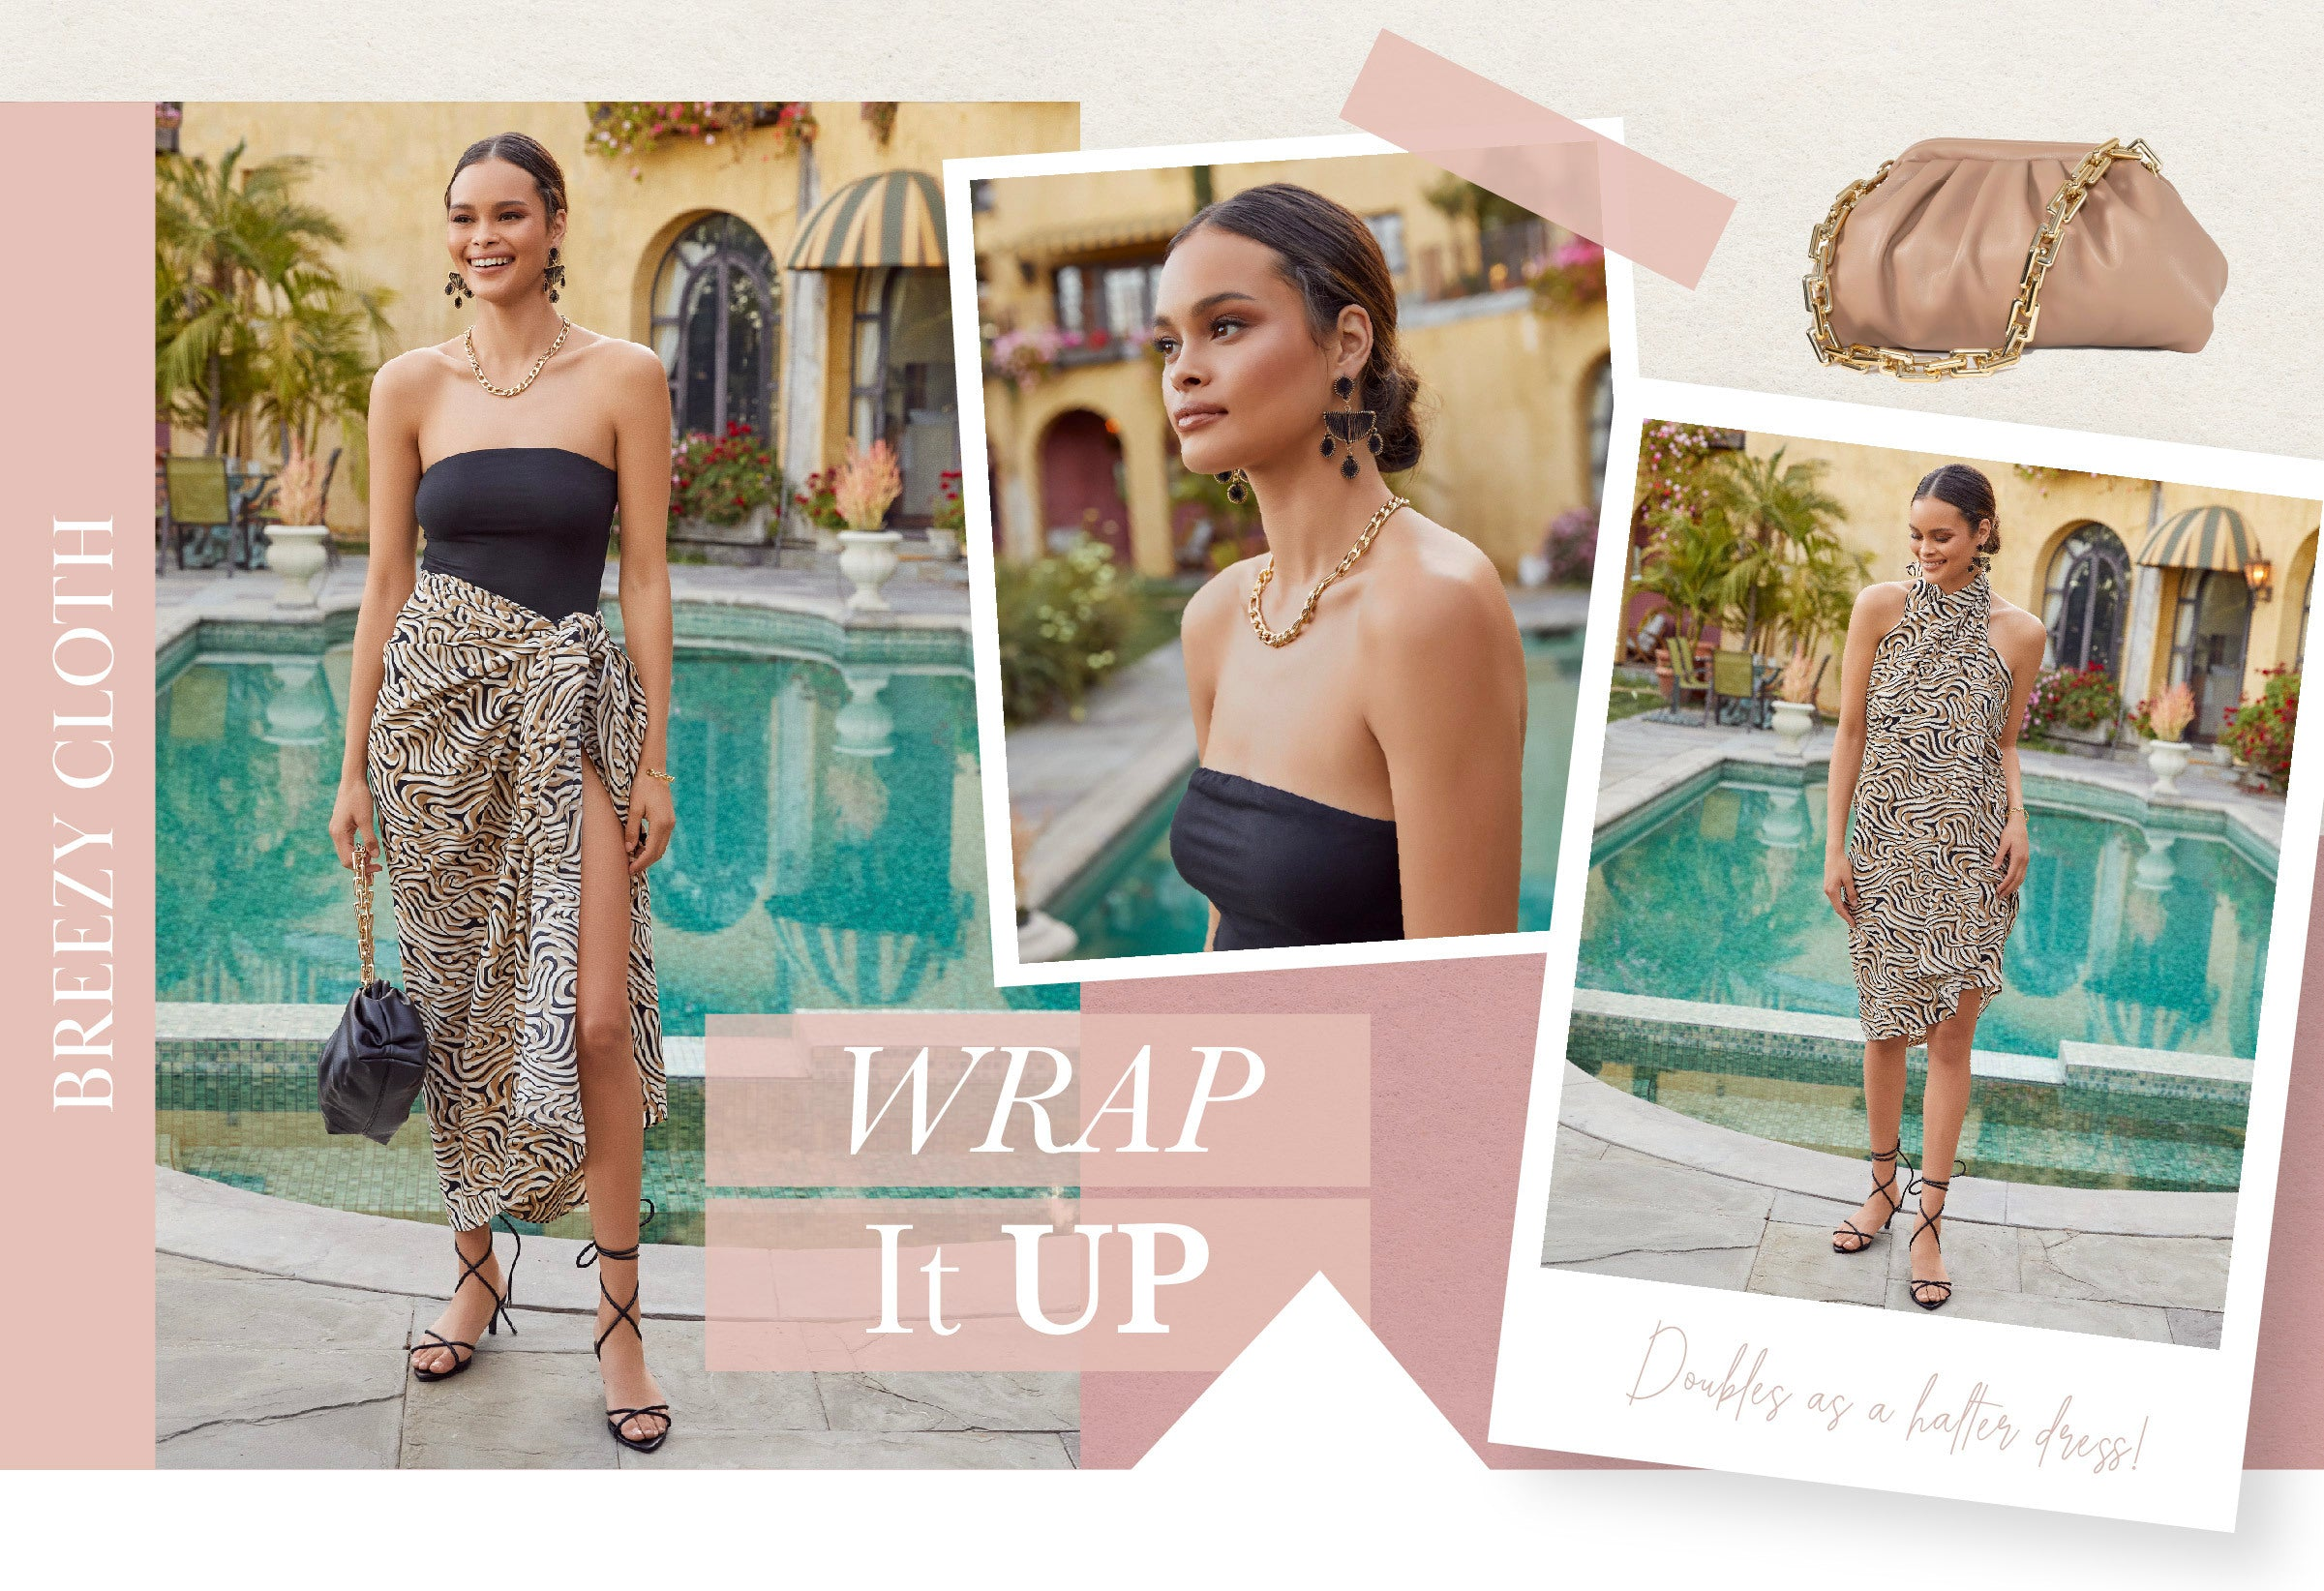 Treat your beach sarong cover up to a night out on the town! Easily elevate this piece of fabric by pairing it with a skinny, lace up heel and a chic purse. This breezy cloth also doubles as the star of the show by wrapping it around your neck in a halter mini dress style.